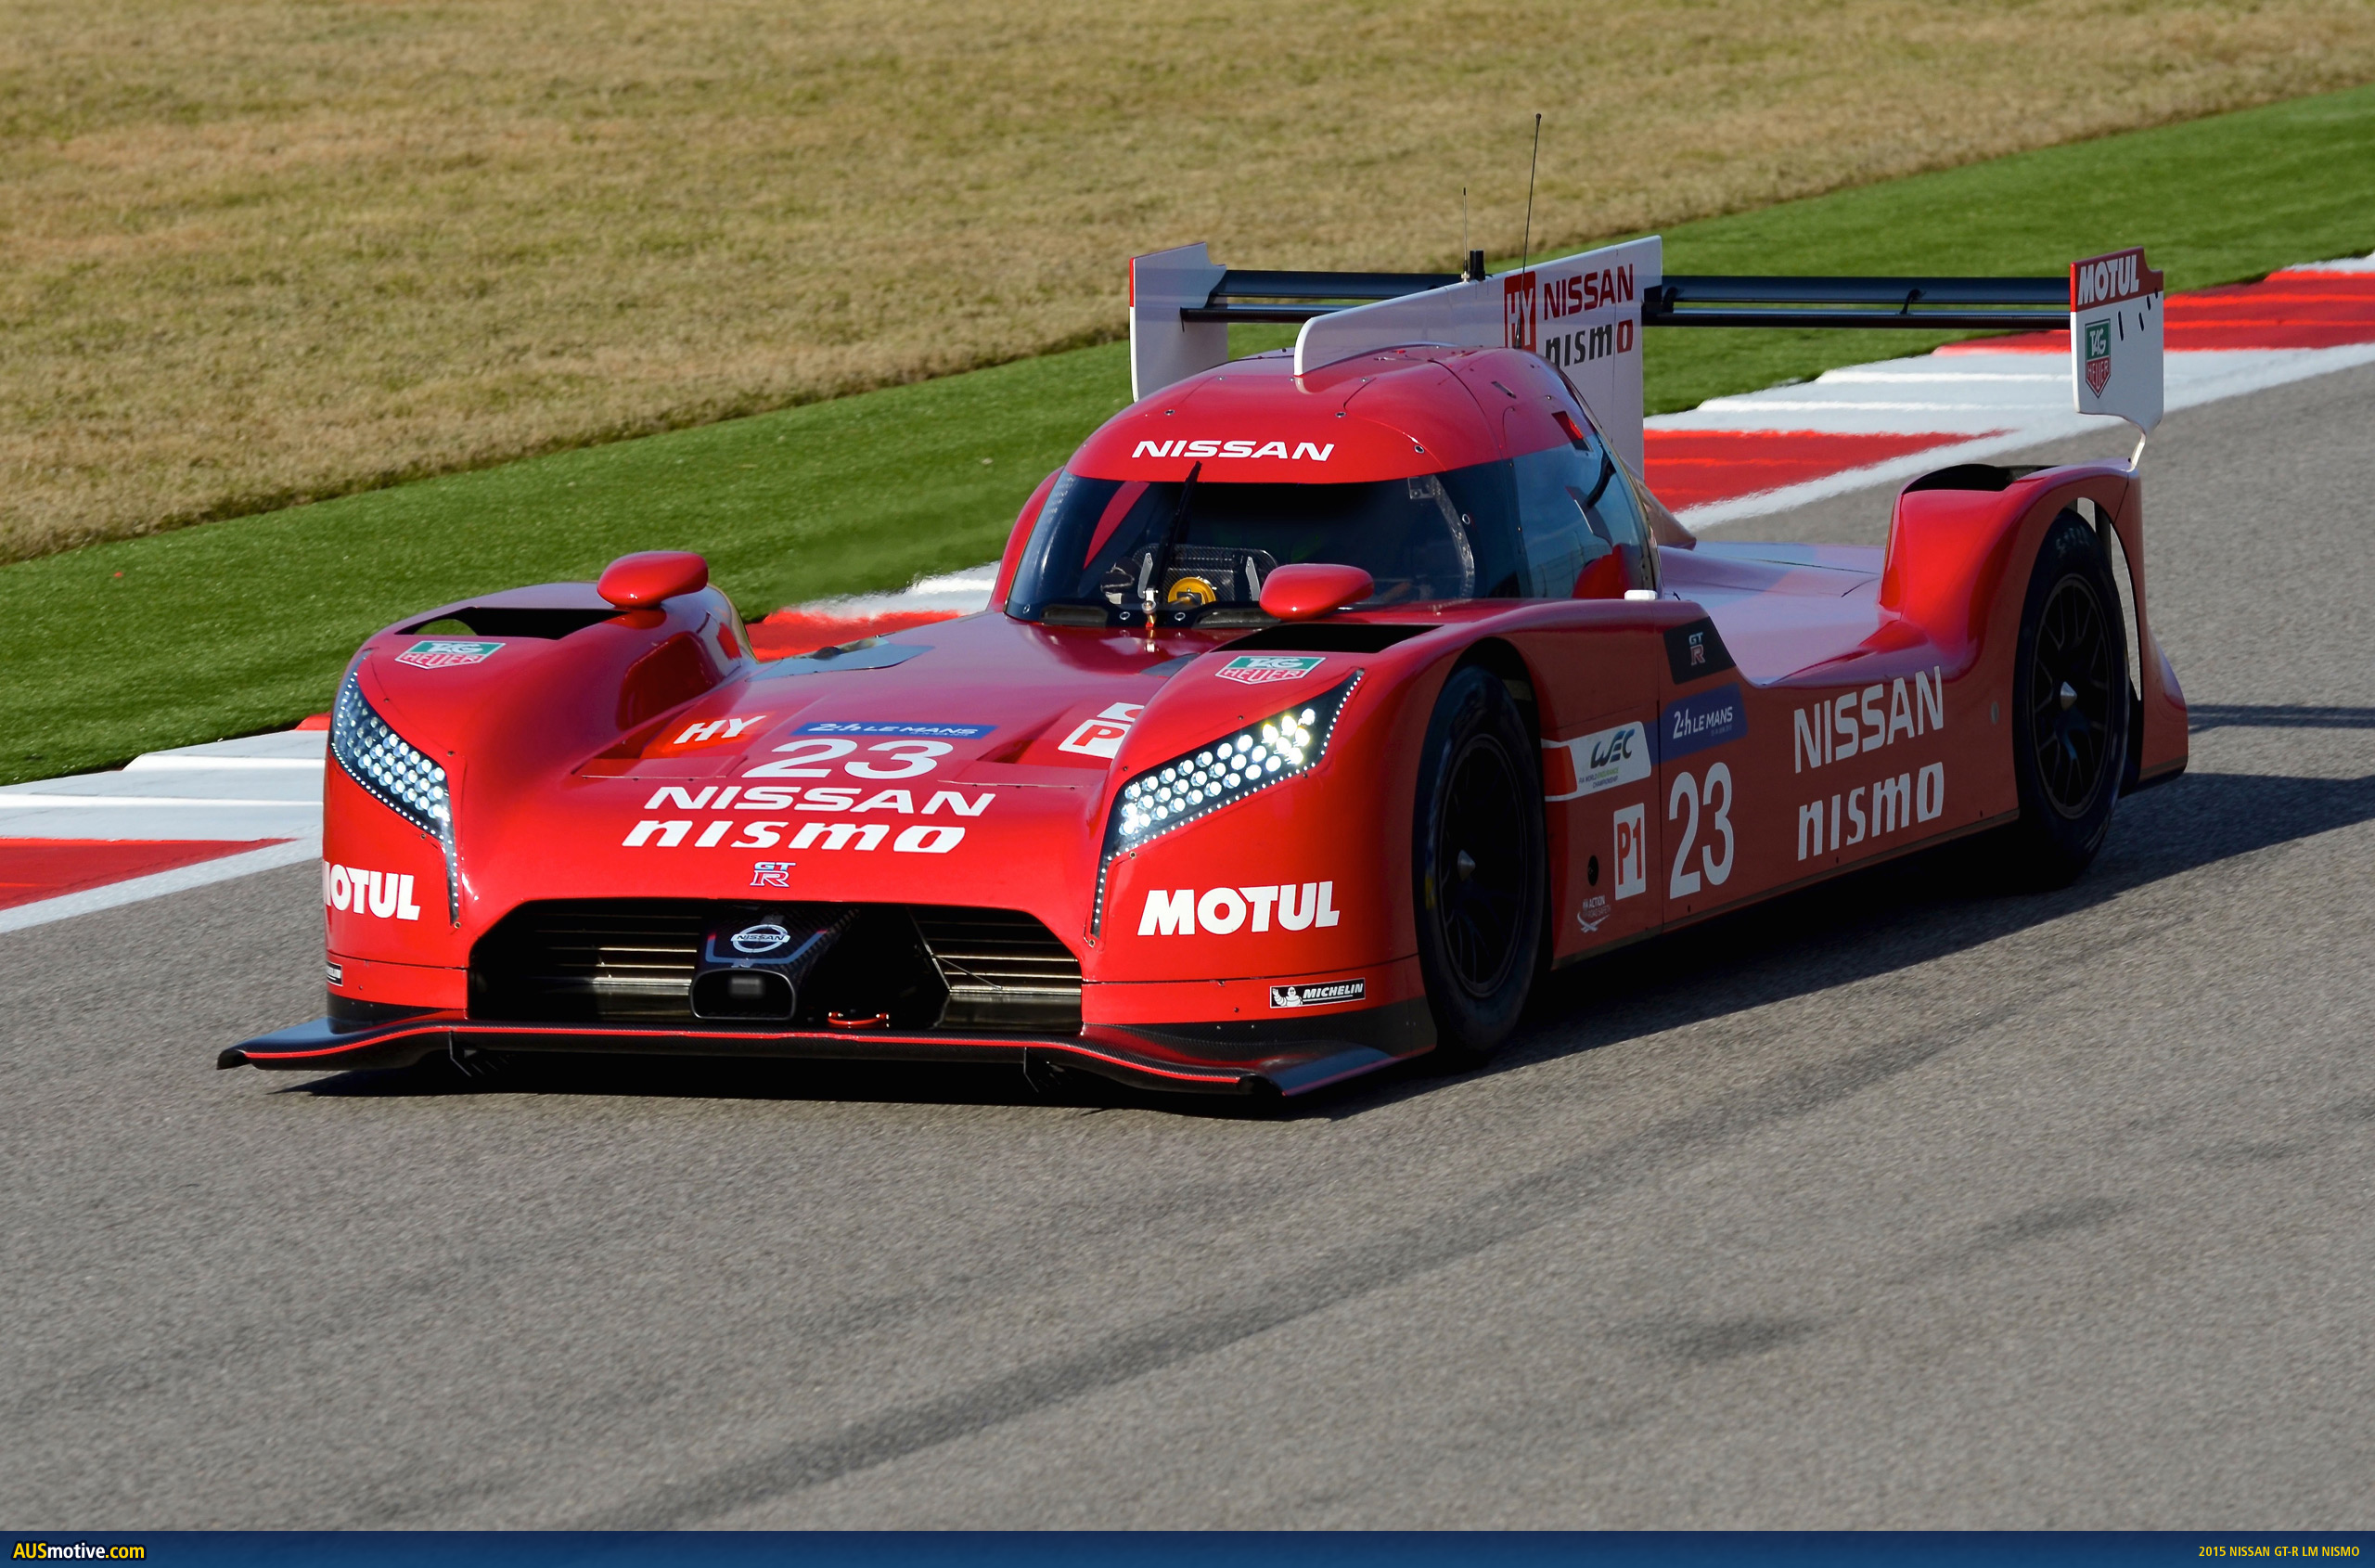 AUSmotive.com » 2015 Nissan GT-R LM Nismo revealed